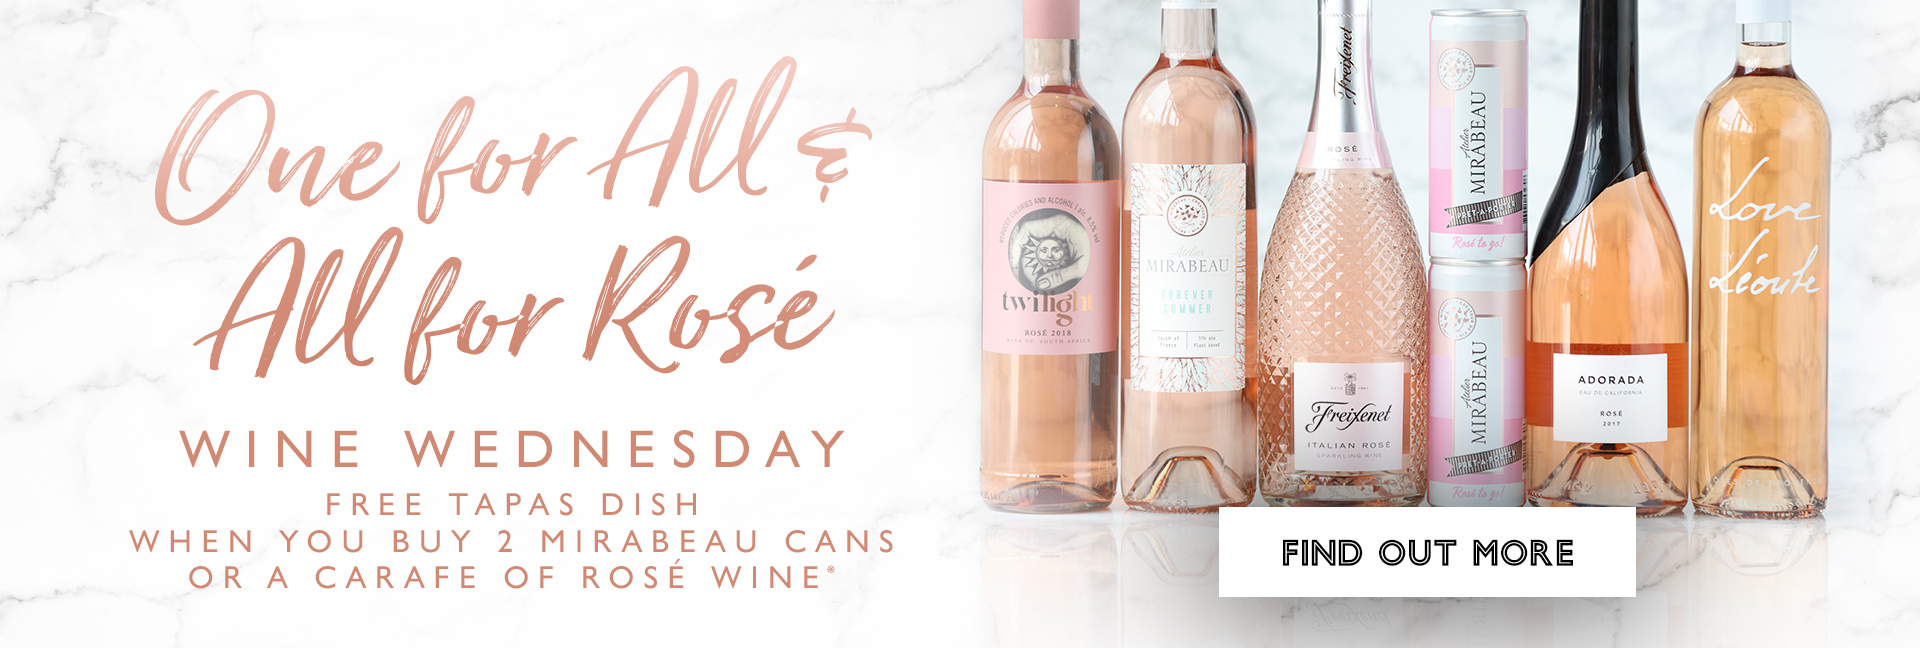 Wine Wednesdays at All Bar One Charing Cross